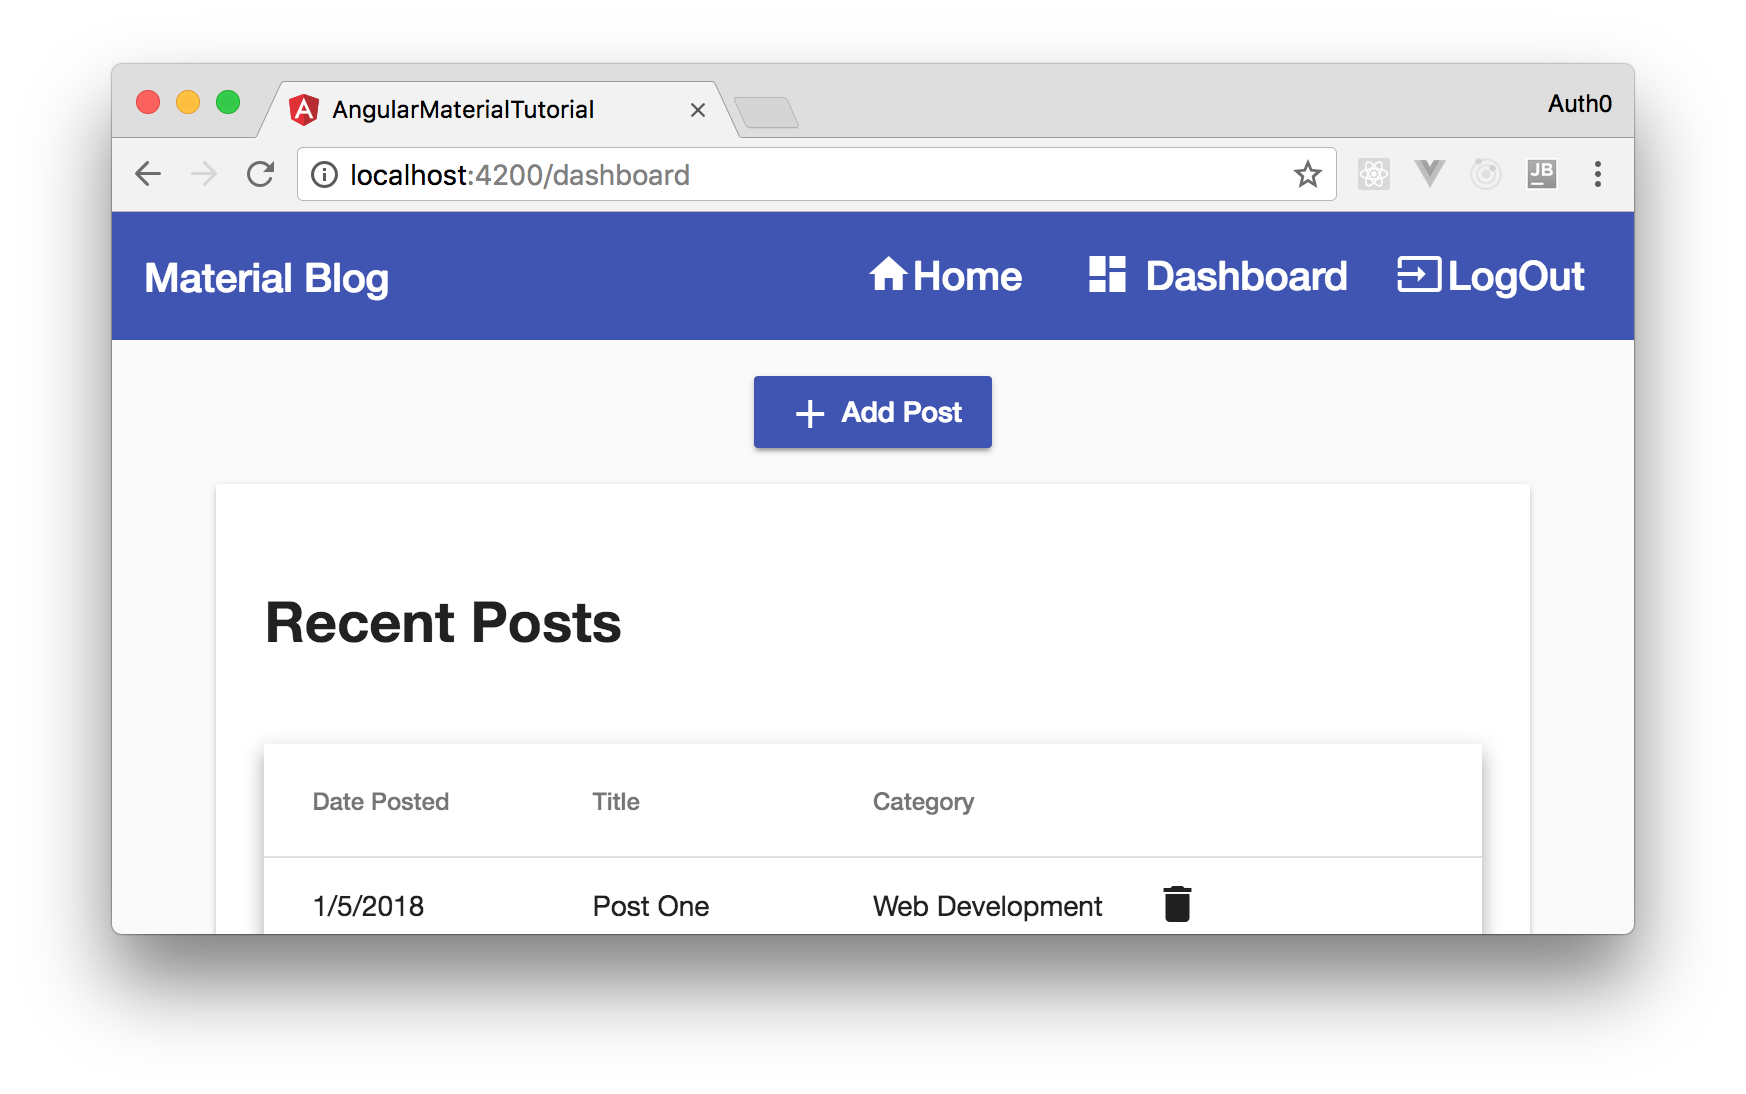 Angular Material project secured with Auth0